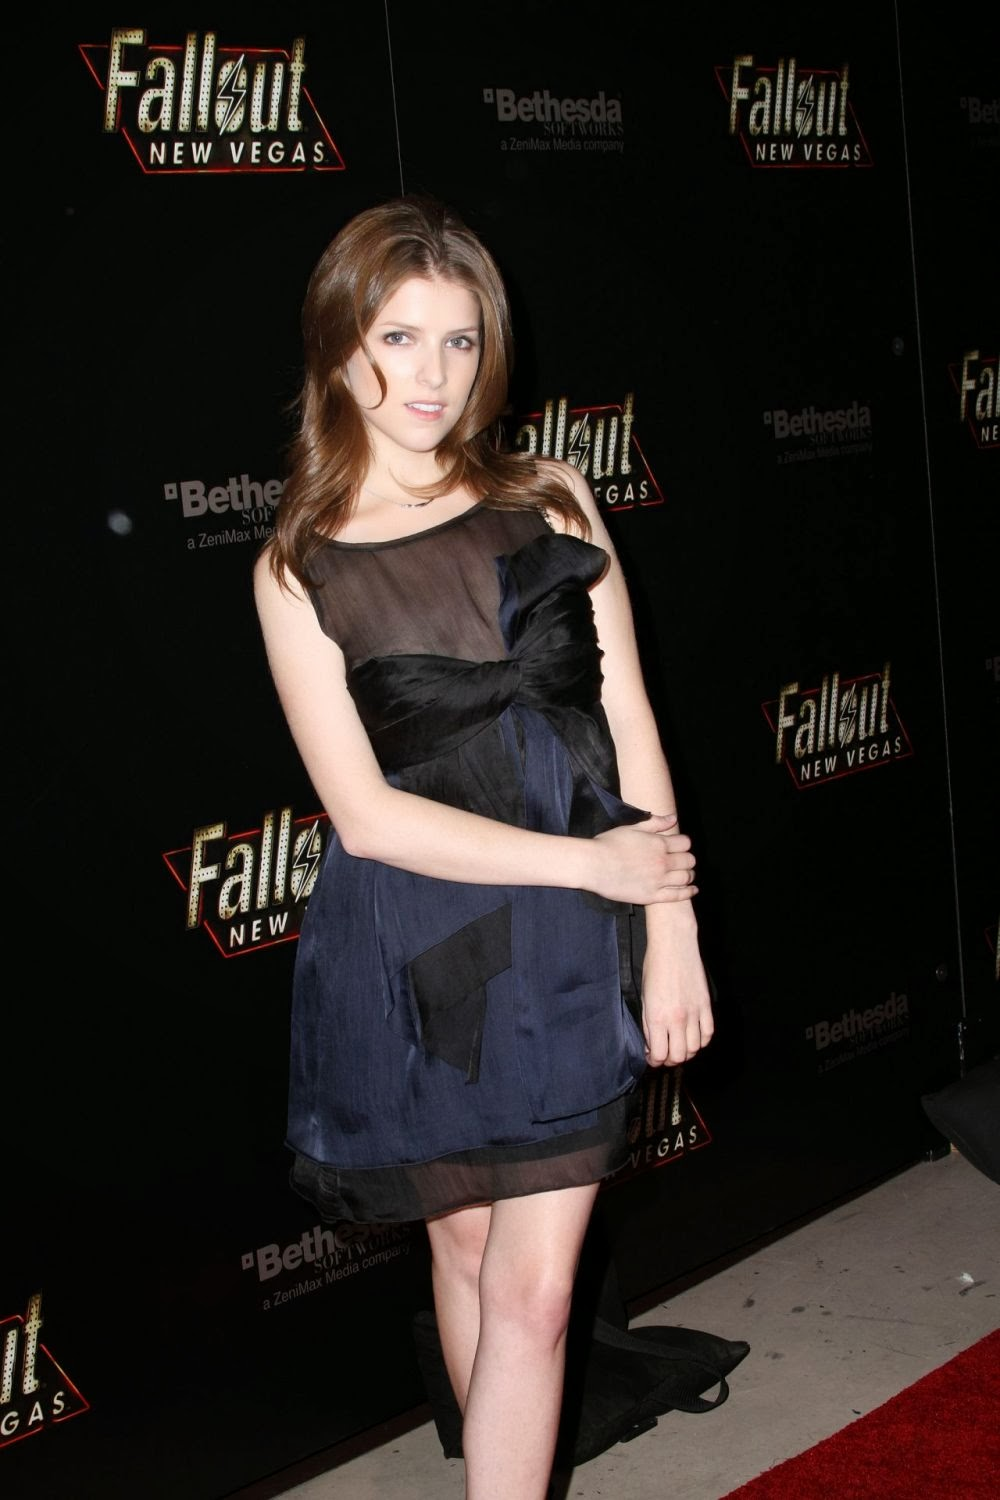 Anna Kendrick Nip Slip in 'Fallout: New Vegas' Launch Party